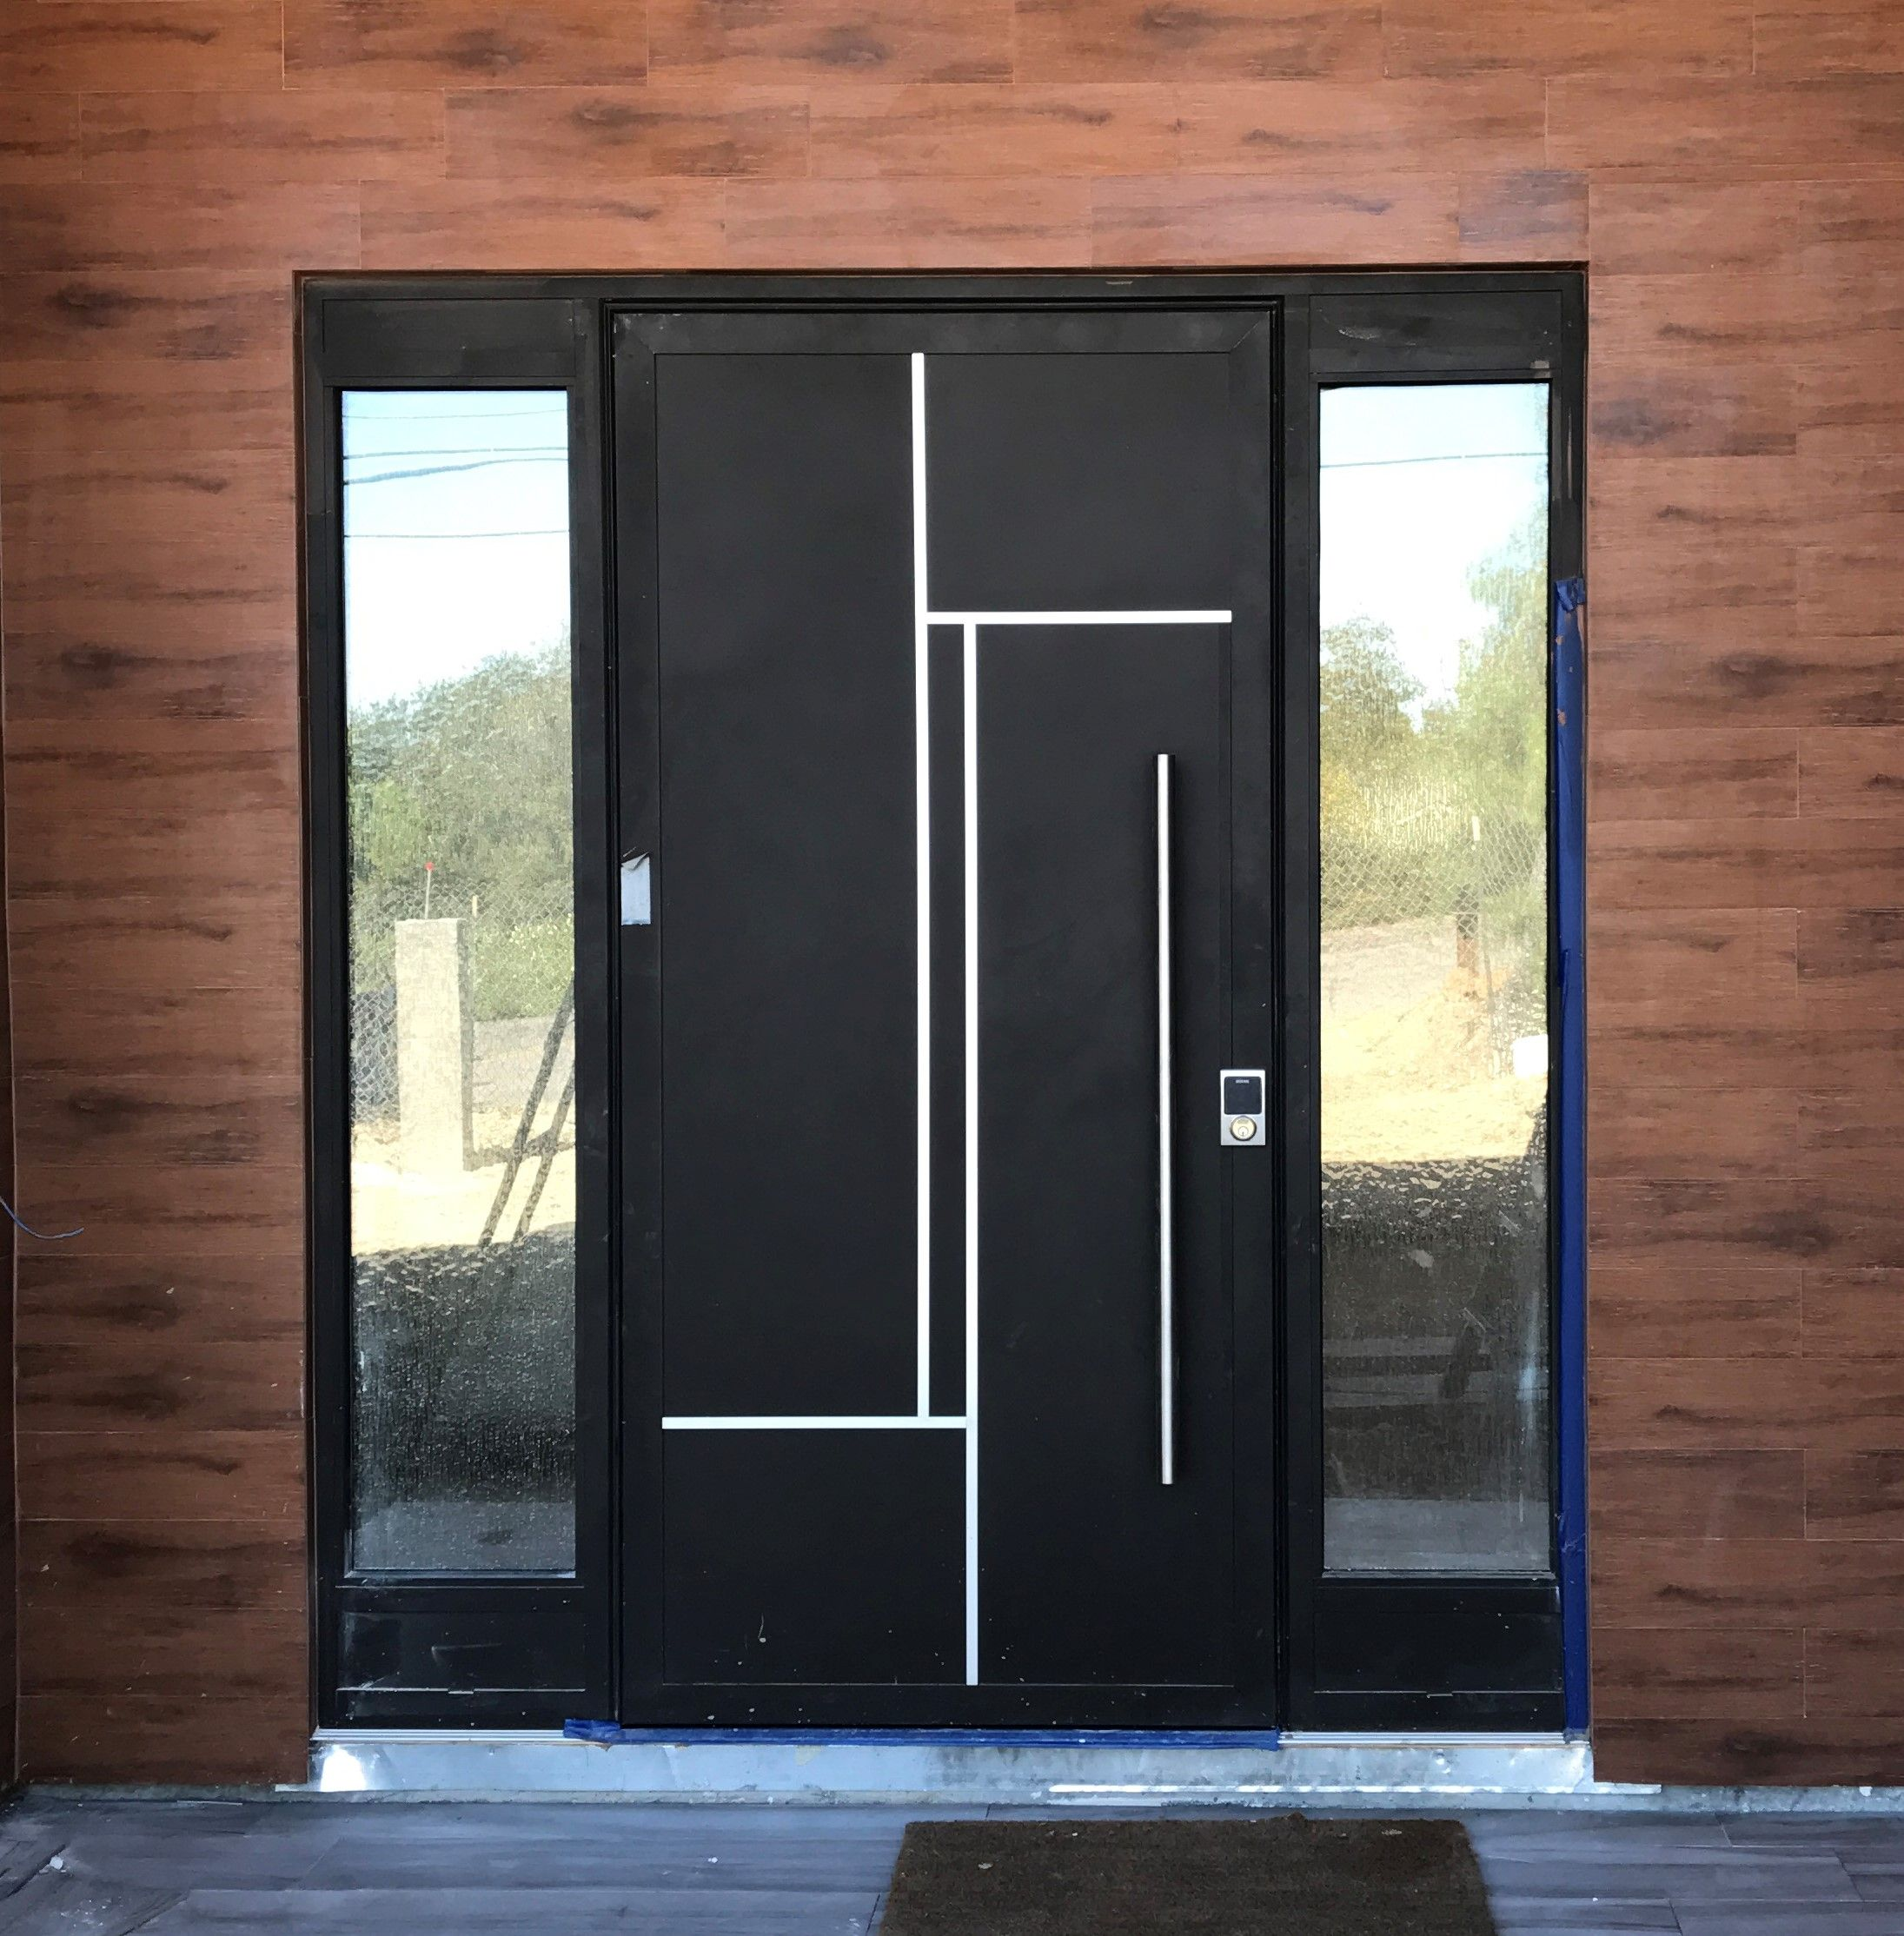 CBW Doors Is A Los Angeles Based High End Door Manufacturer Focusing On  Delivering Great Quality Custom Built Entry Doors To Clients.